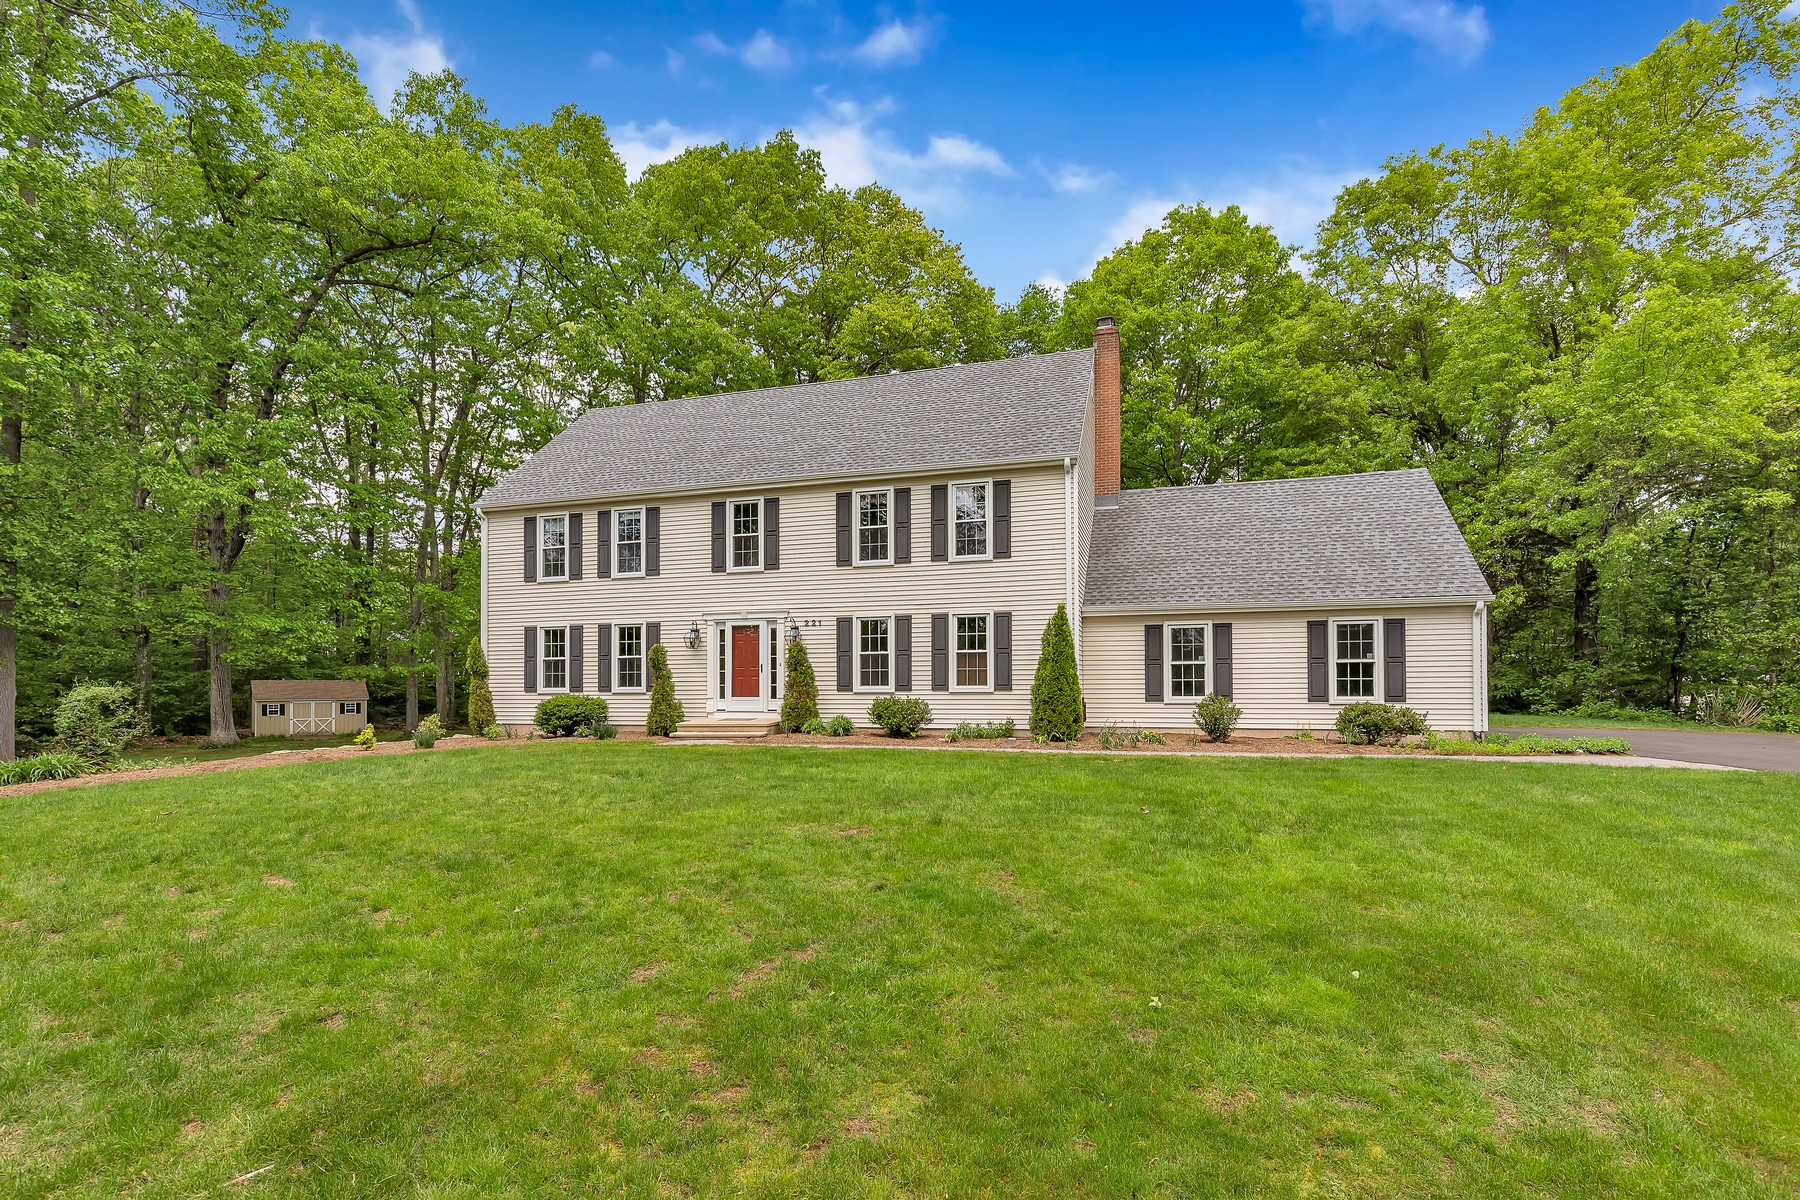 Single Family Homes for Sale at Impeccable Colonial on a Private Lane 221 Wiese Road Cheshire, Connecticut 06410 United States